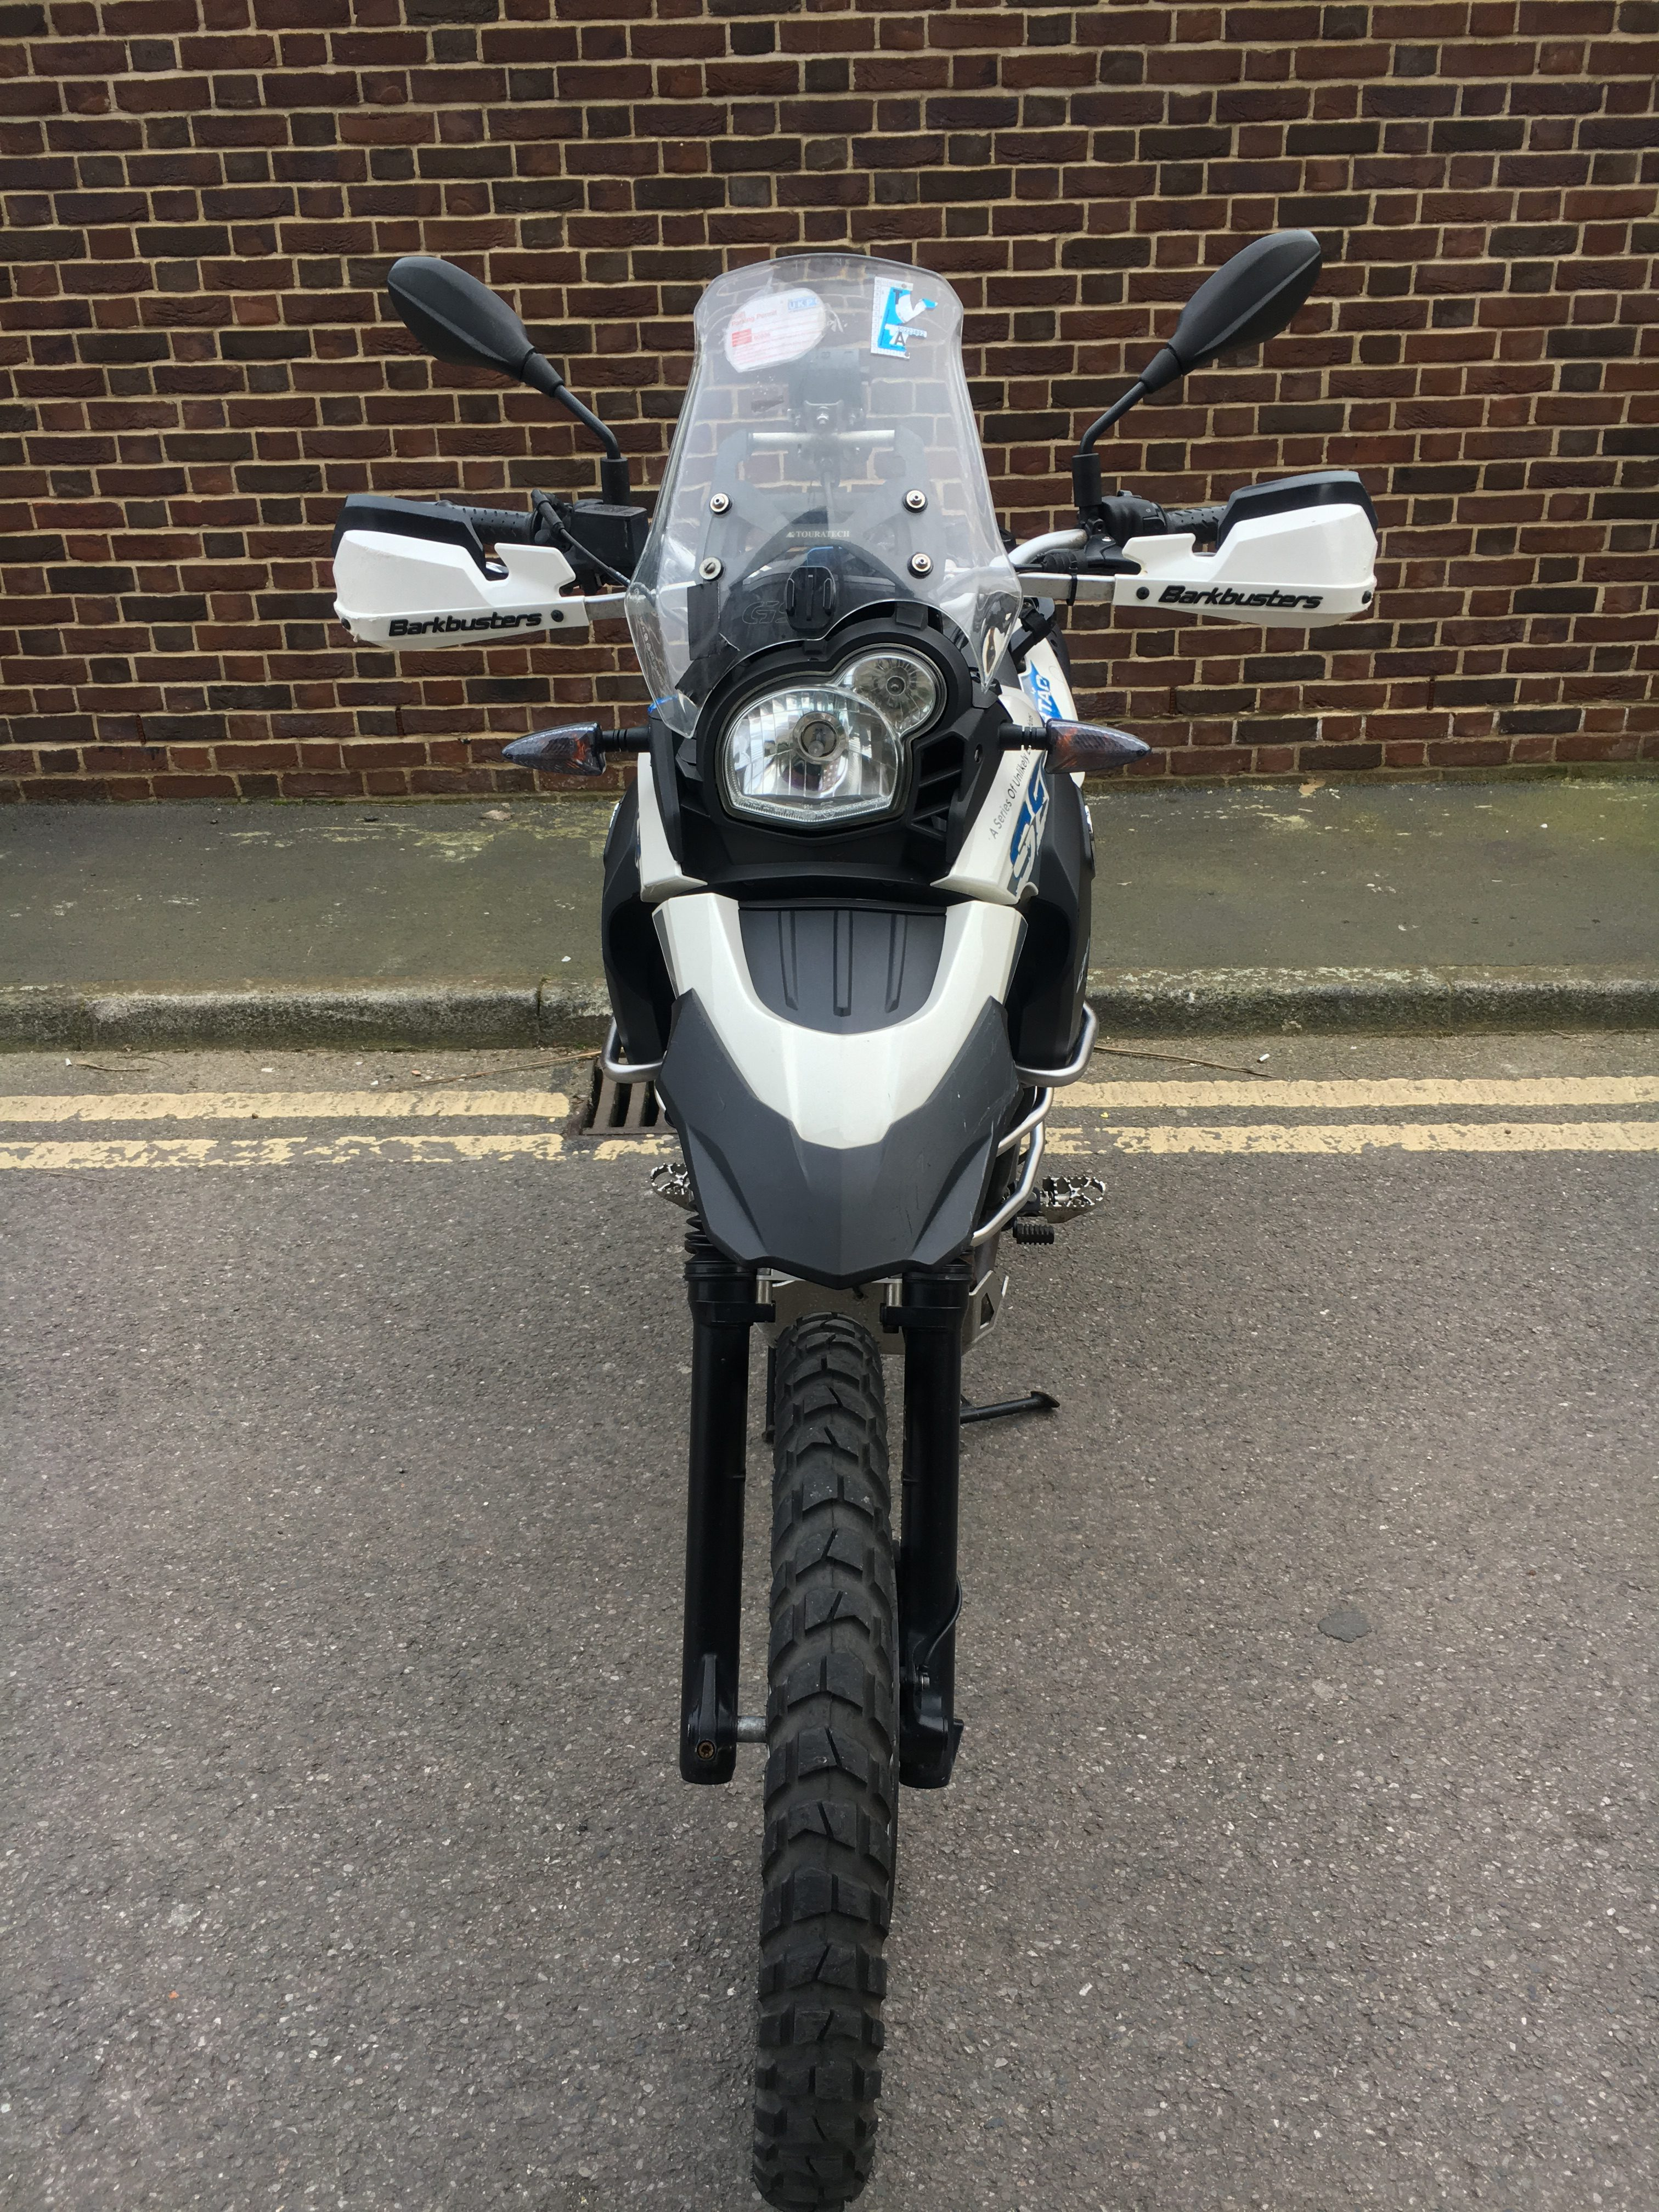 For Sale Bmw G650 Gs Sertao London Uk Horizons Unlimited The Hubb